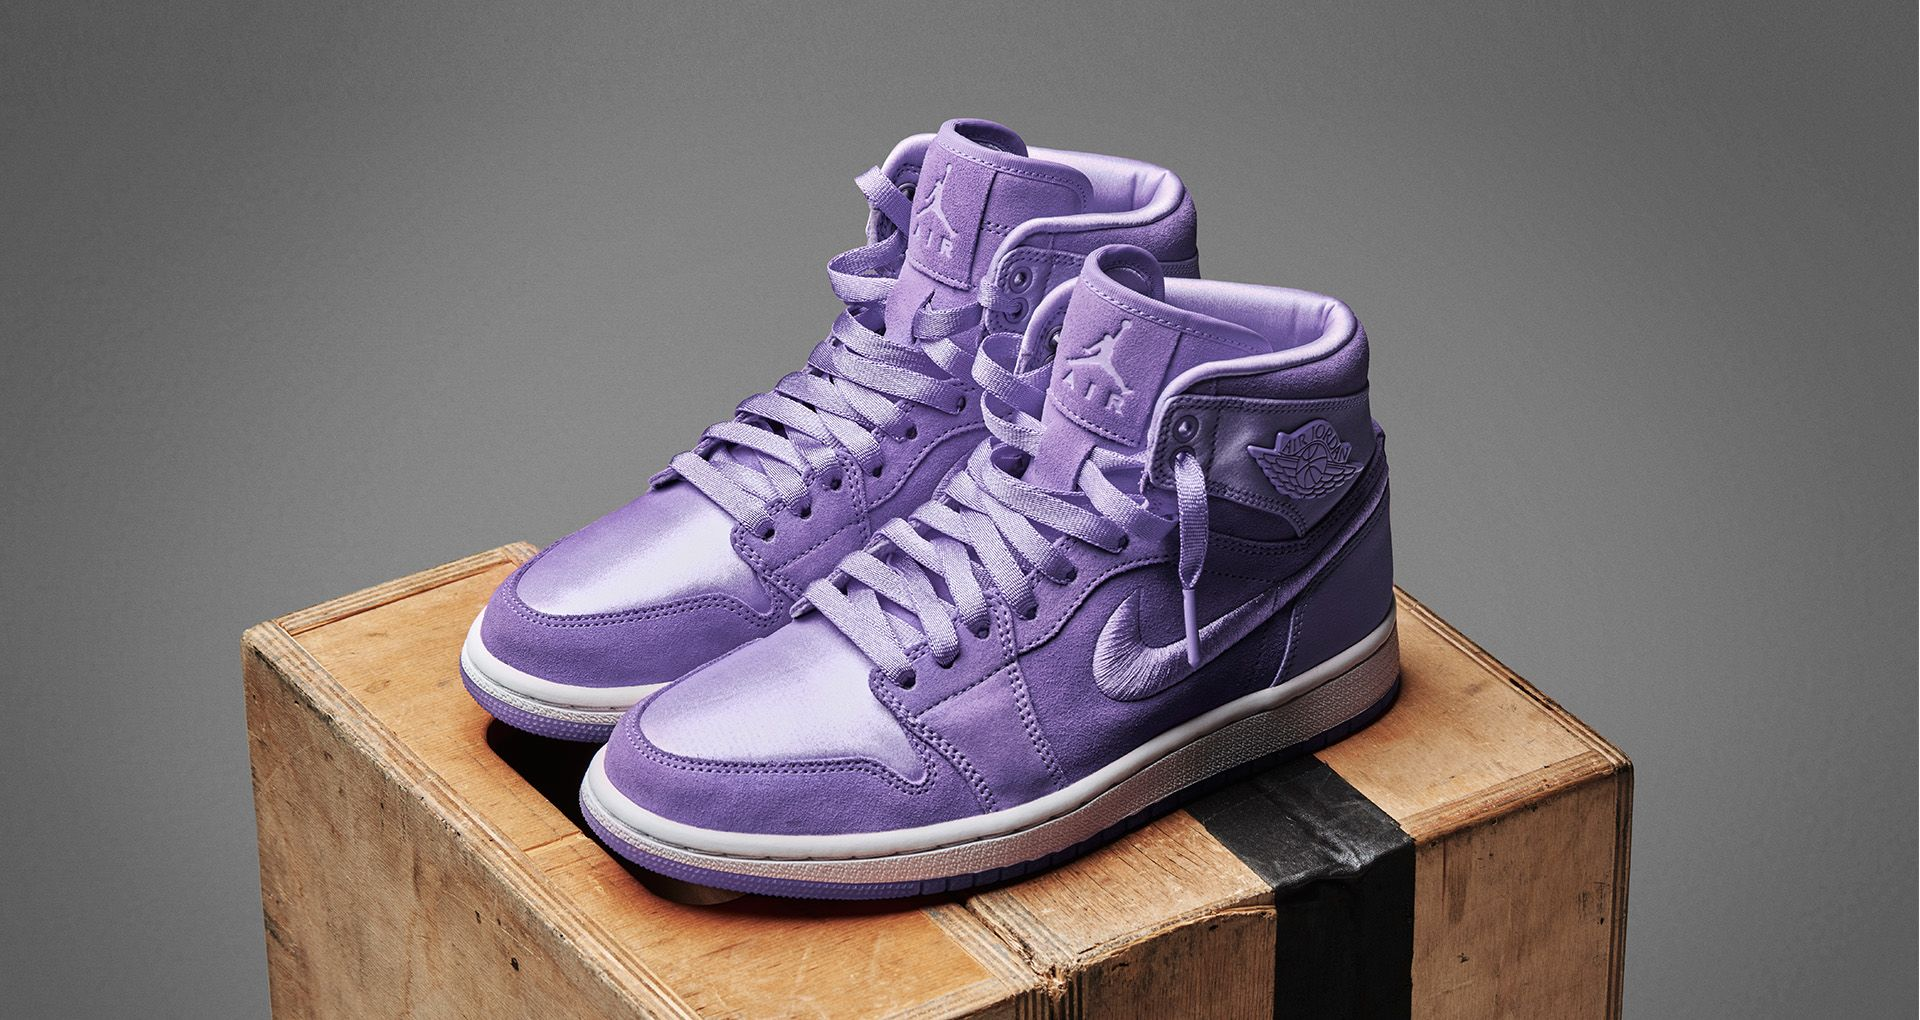 wholesale dealer a6dfb 77396 Women's Air Jordan 1 High 'Season of Her Collection' Release ...